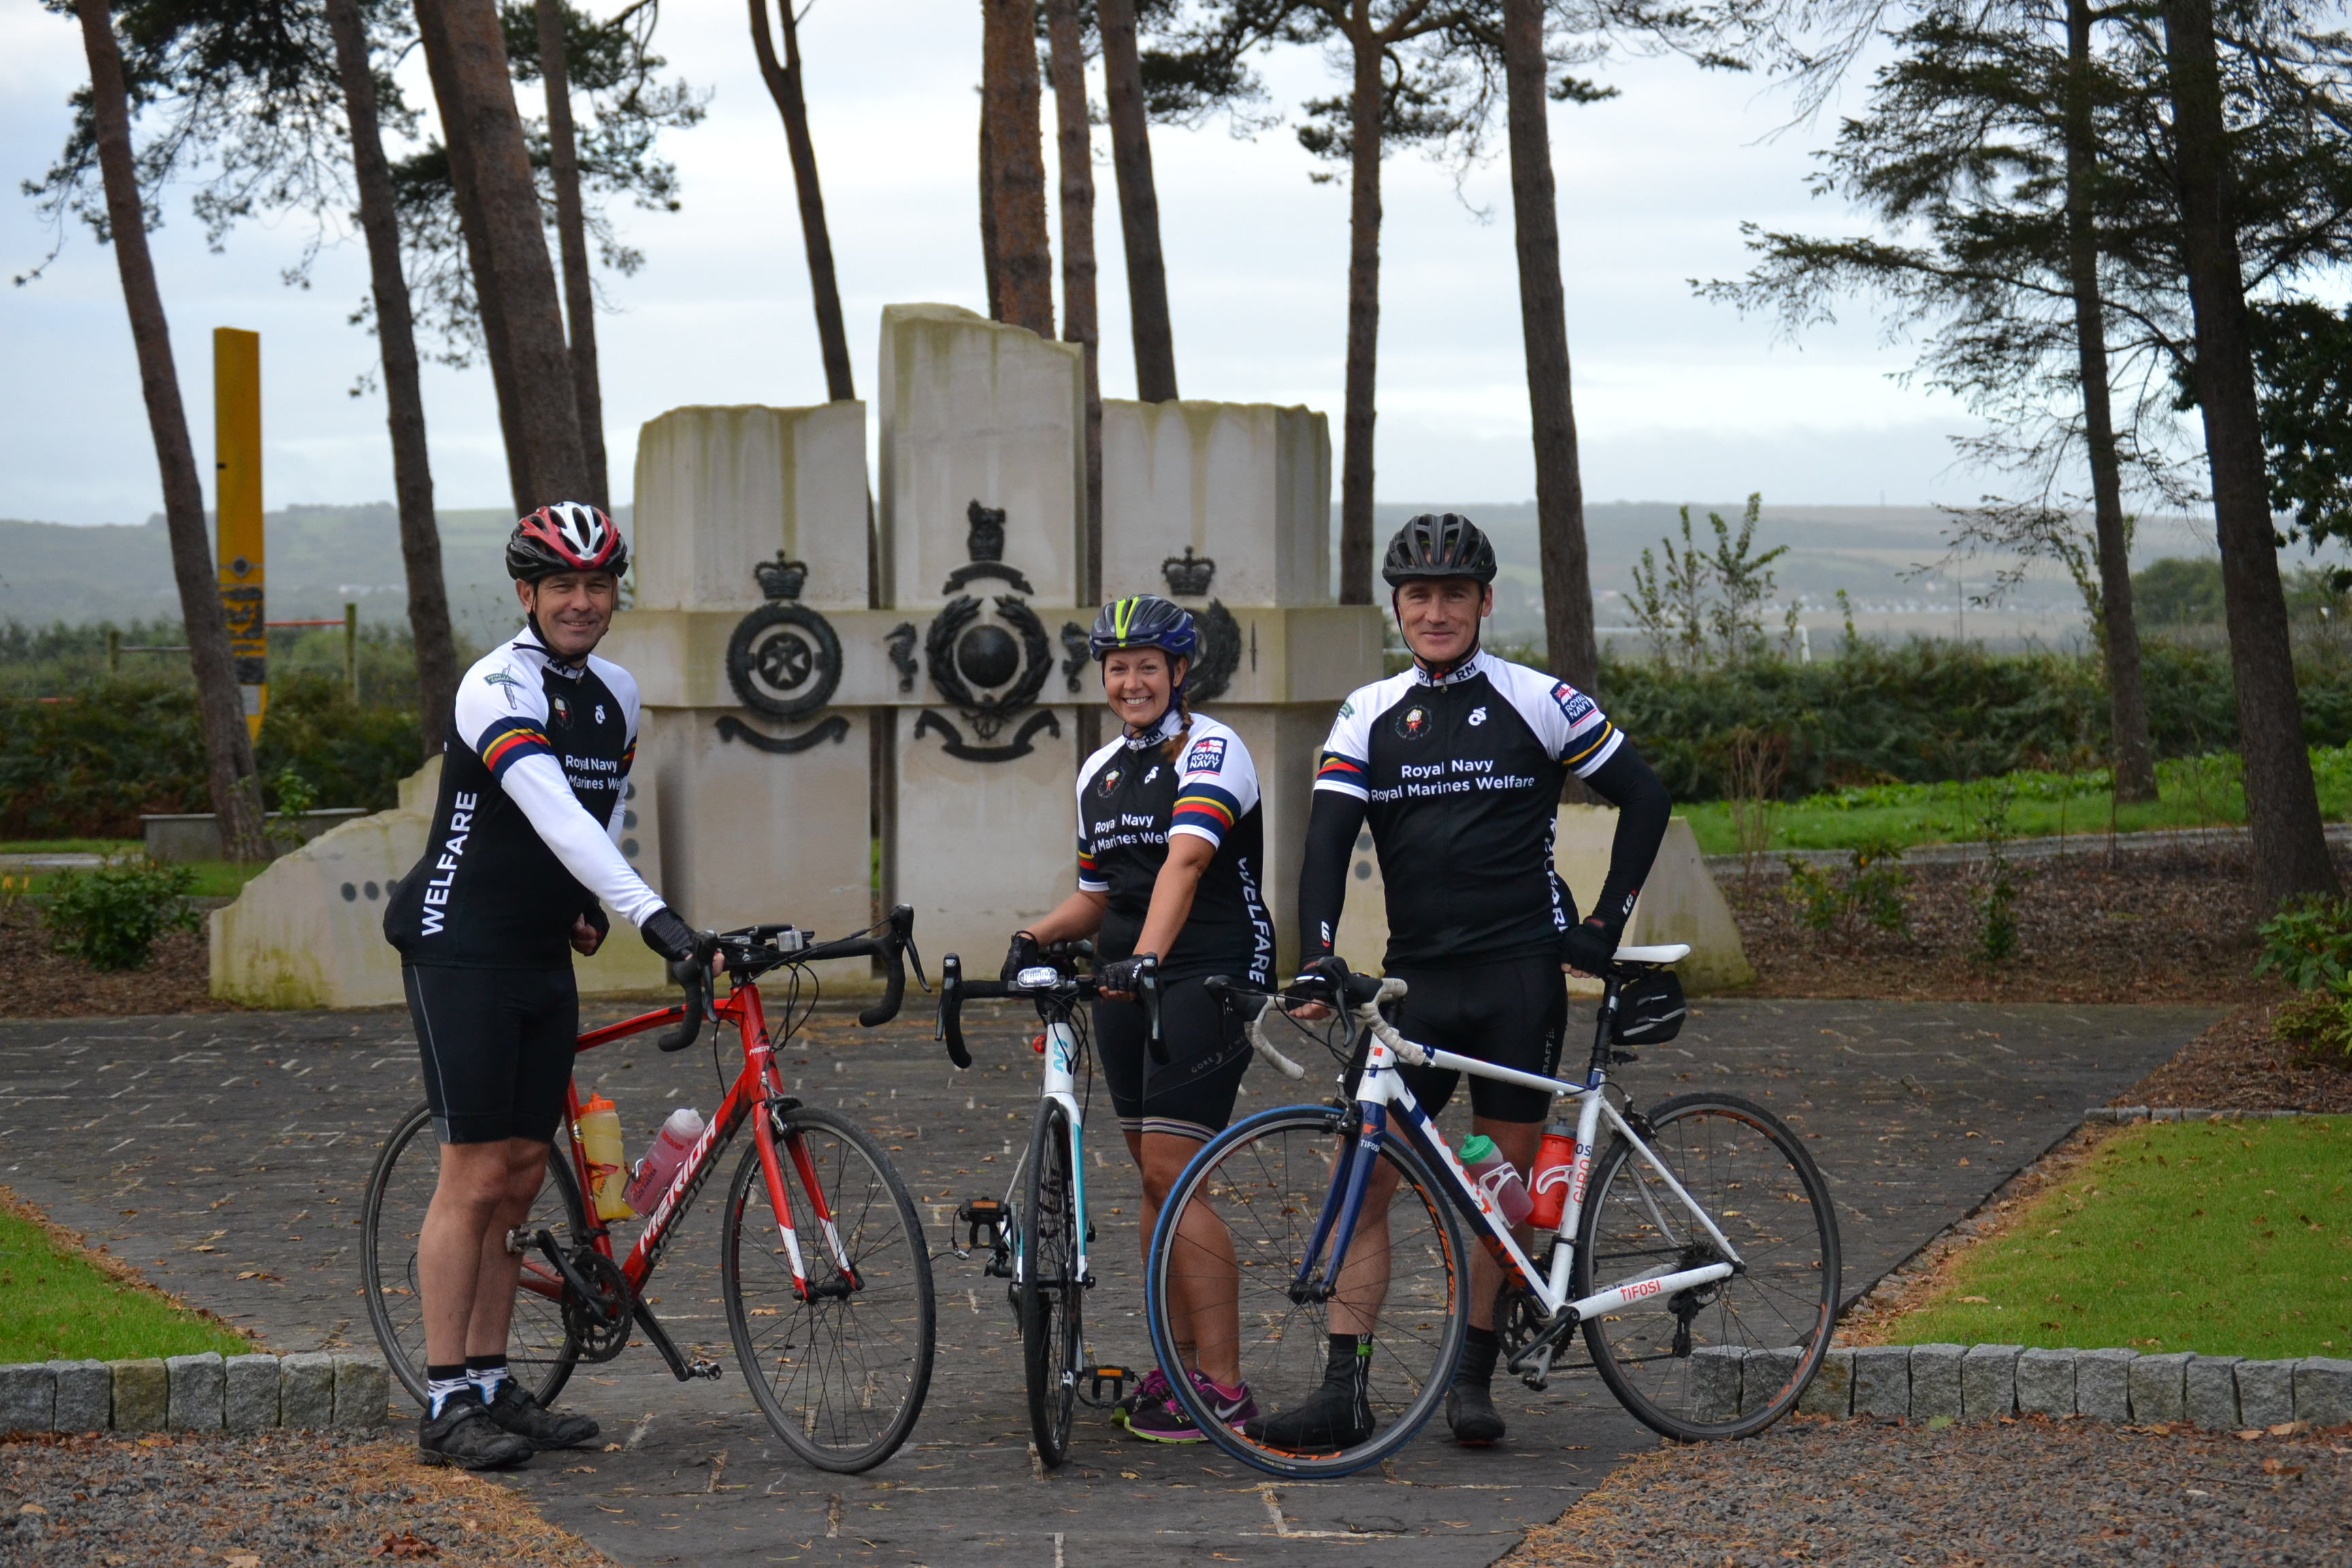 RNRMW Royal Navy Royal Marines Welfare Cycle Ride Office to Office 100 miles